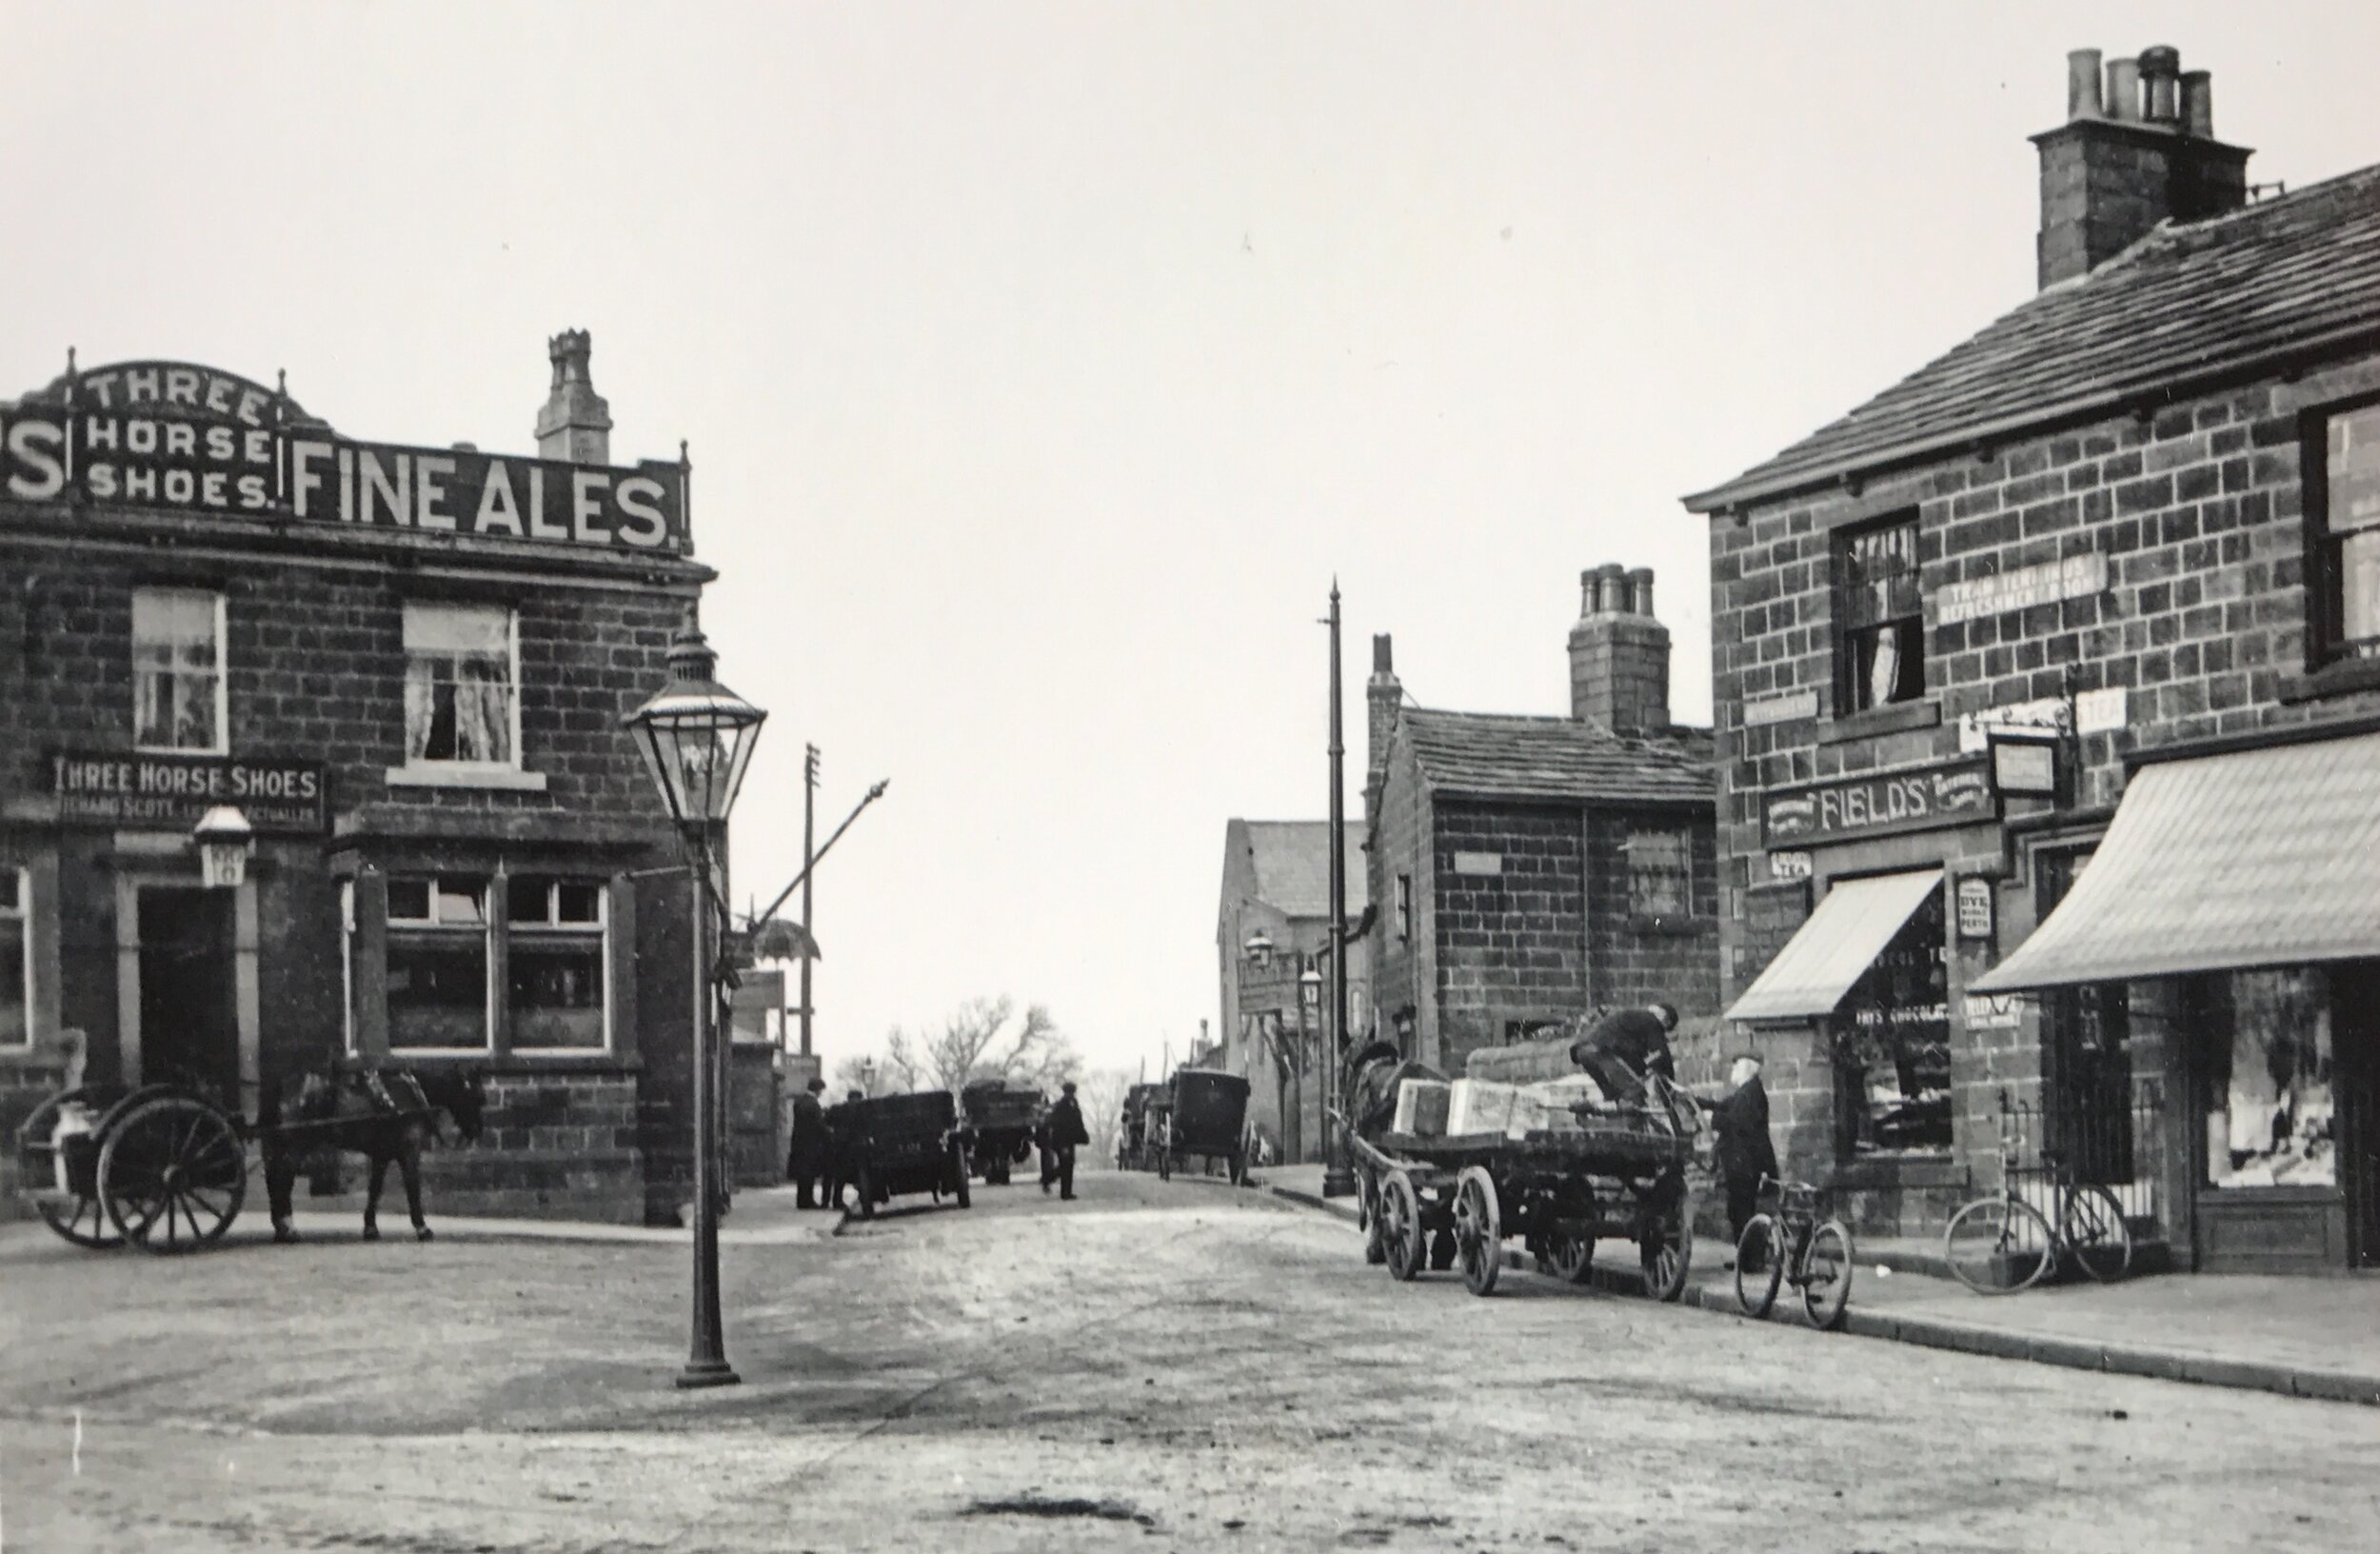 01  Three Horse Shoes Inn, 1900 © Leeds Library and Information Service